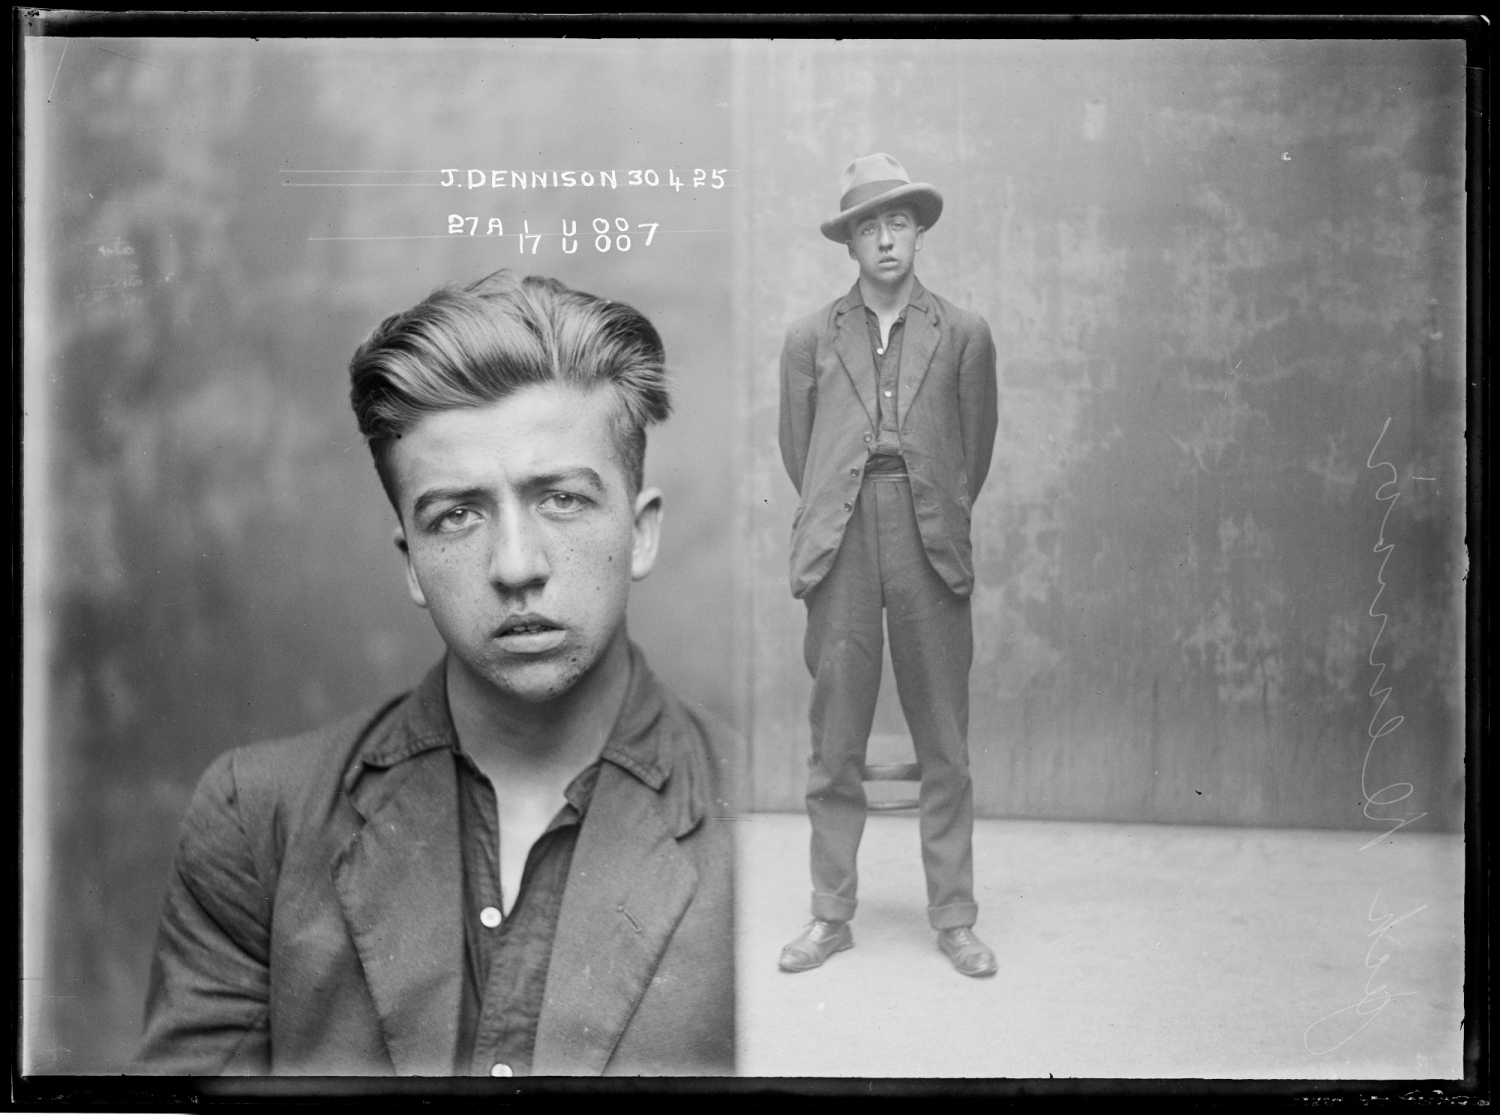 Jack Dennison, special photograph number 27a, 30th April 1925, probably Central Police Station, Sydney